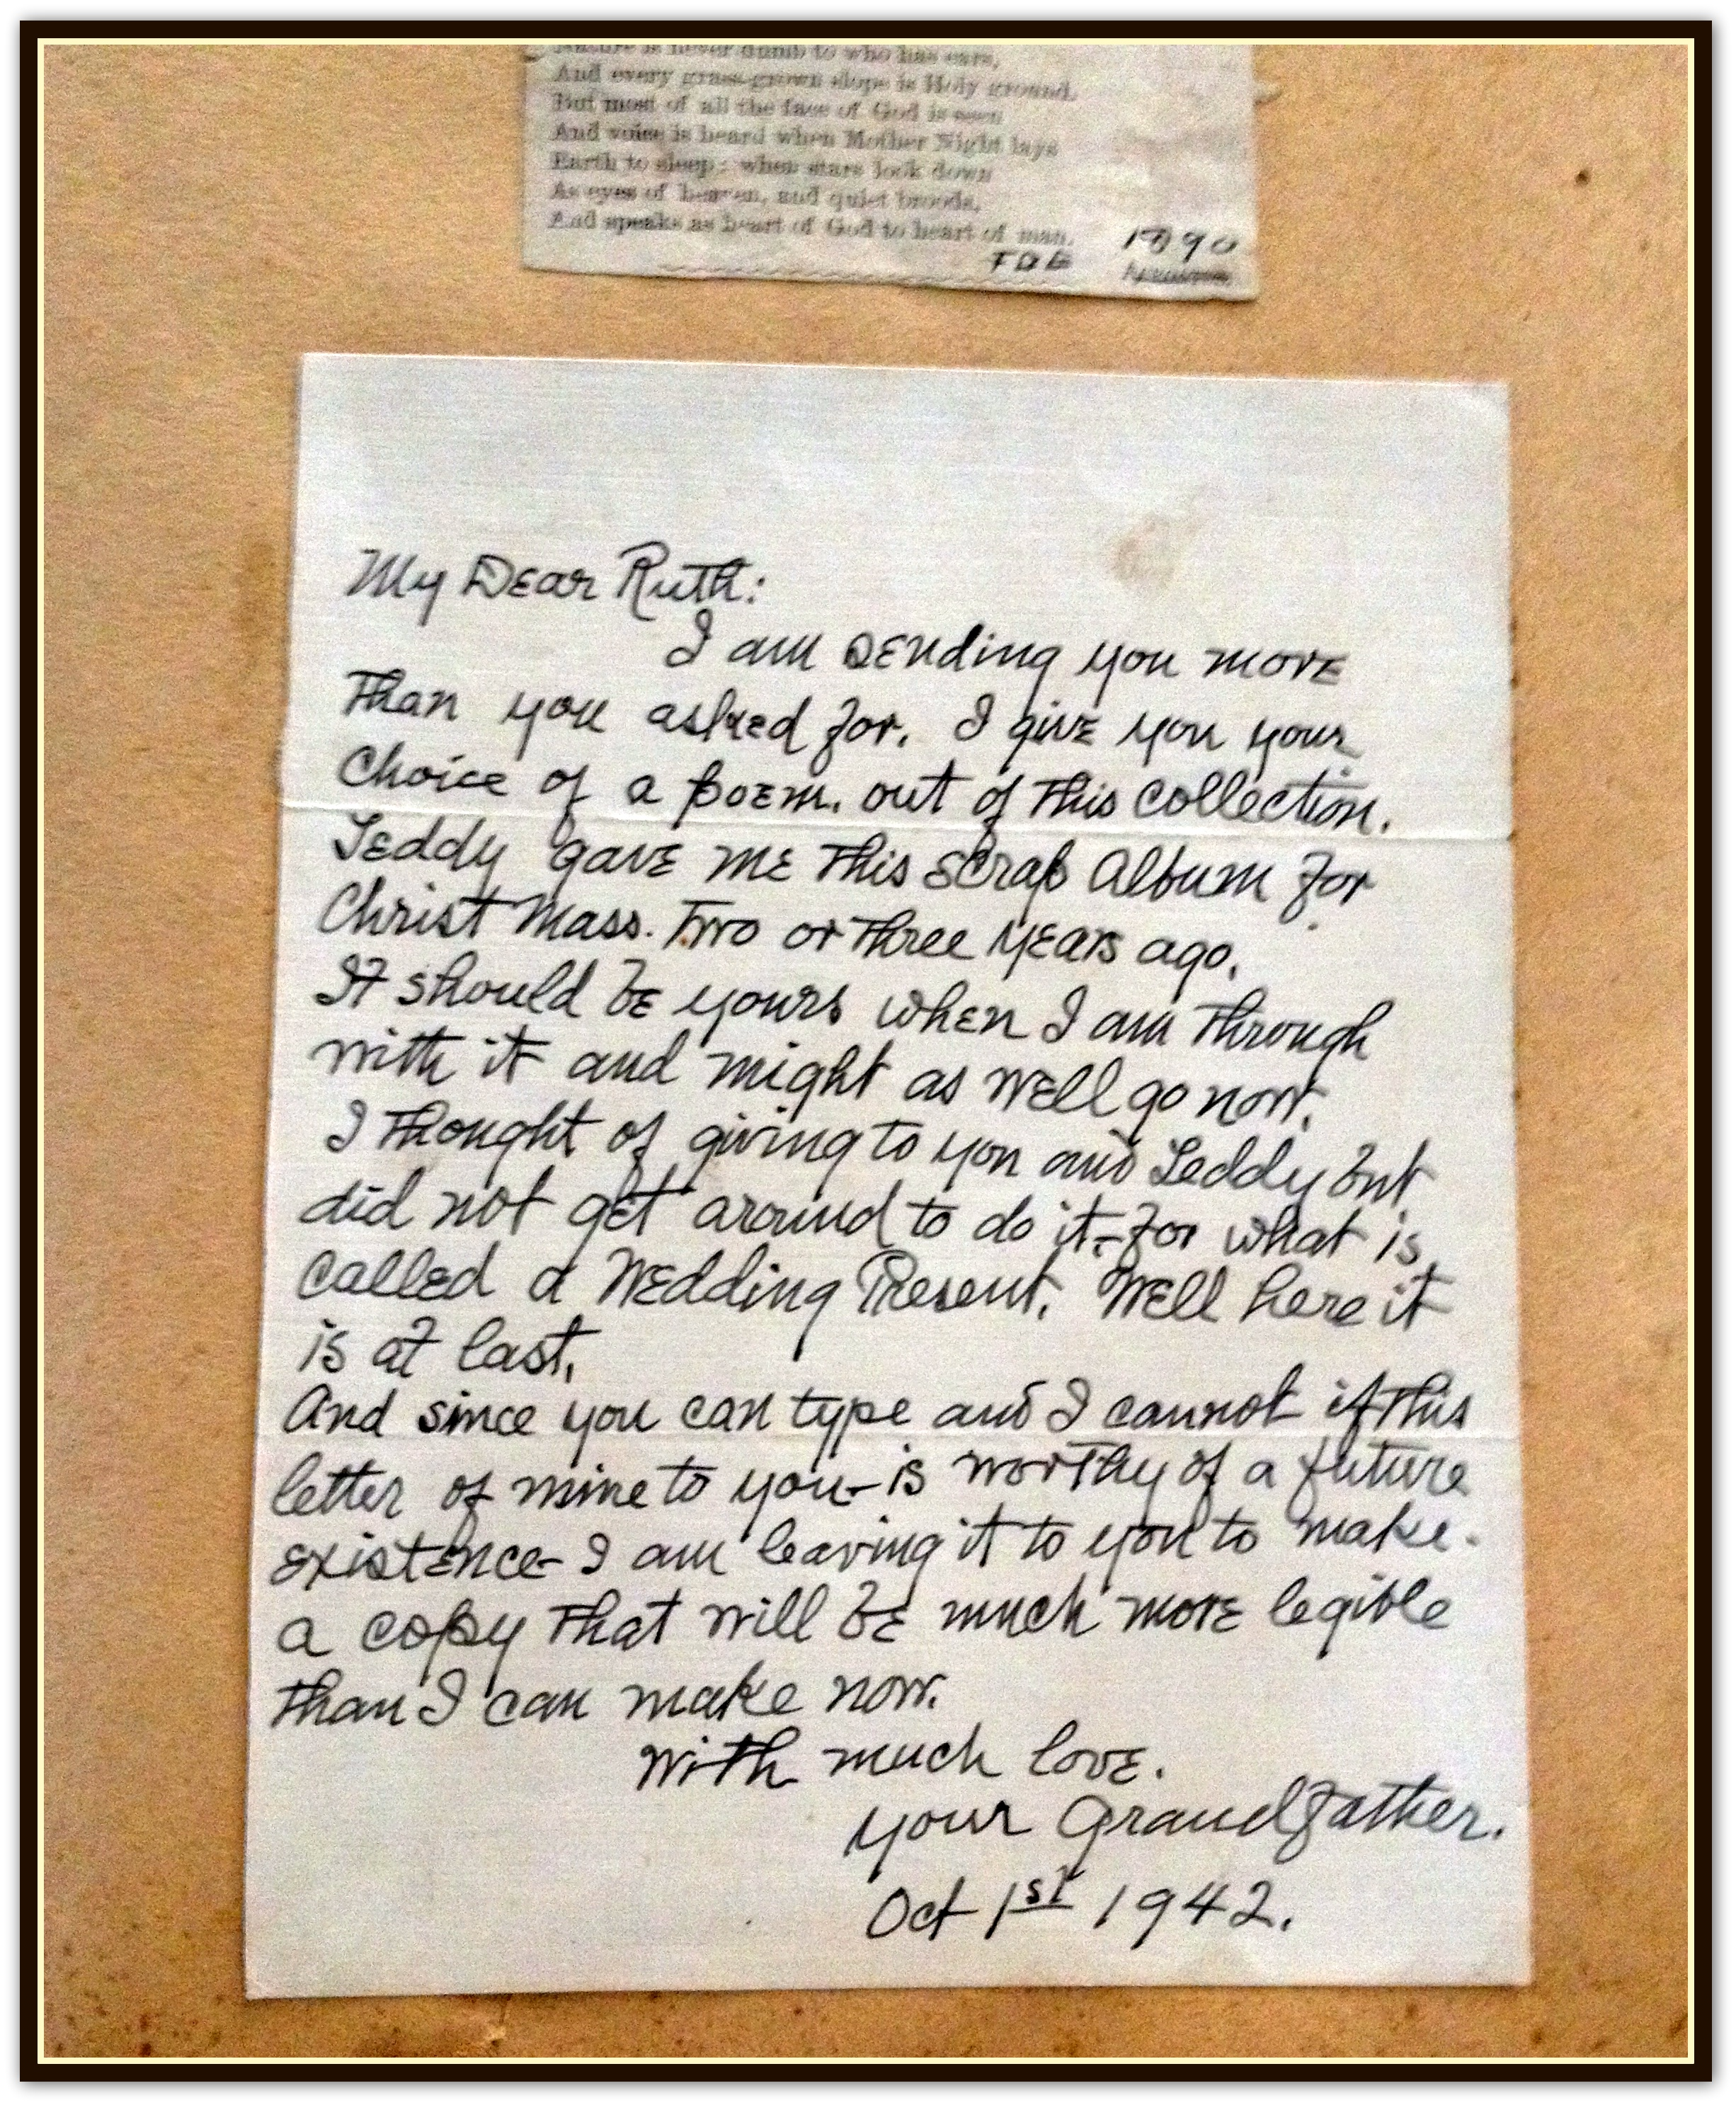 FO Eggleston scrapbook letter to Ruth Berryman